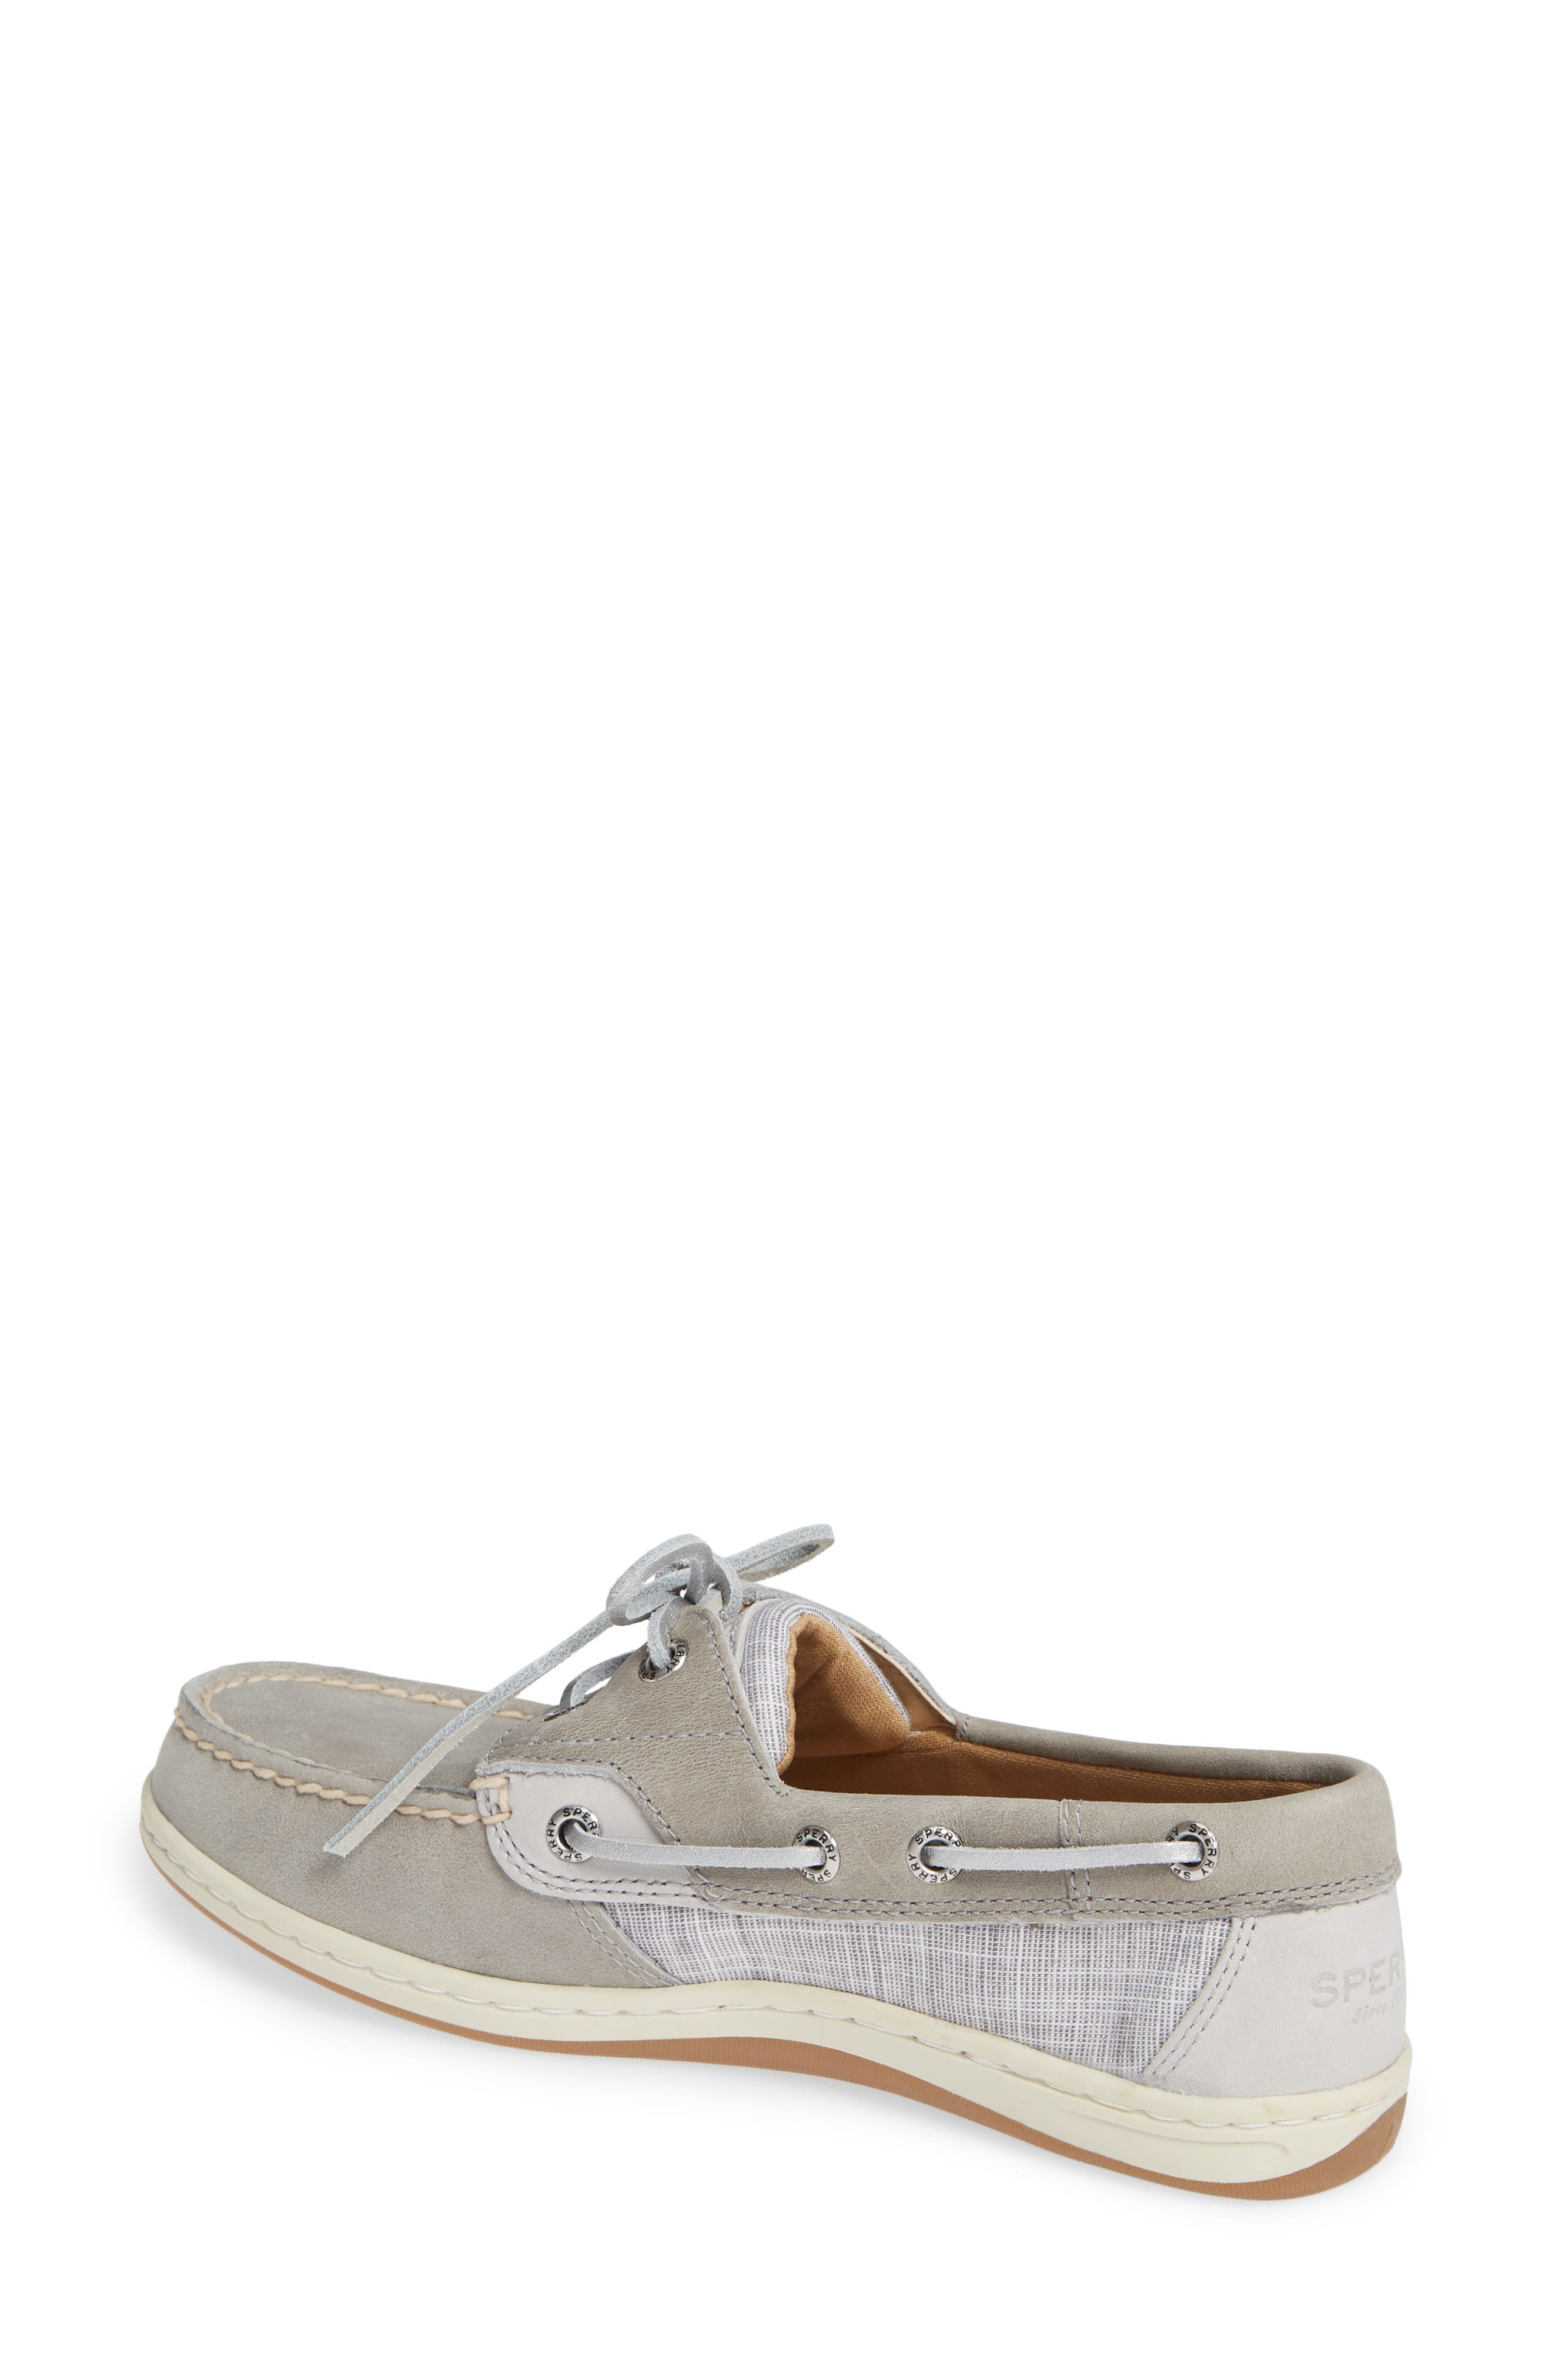 Top-Sider Koifish Loafer,                             Alternate thumbnail 2, color,                             GREY LEATHER